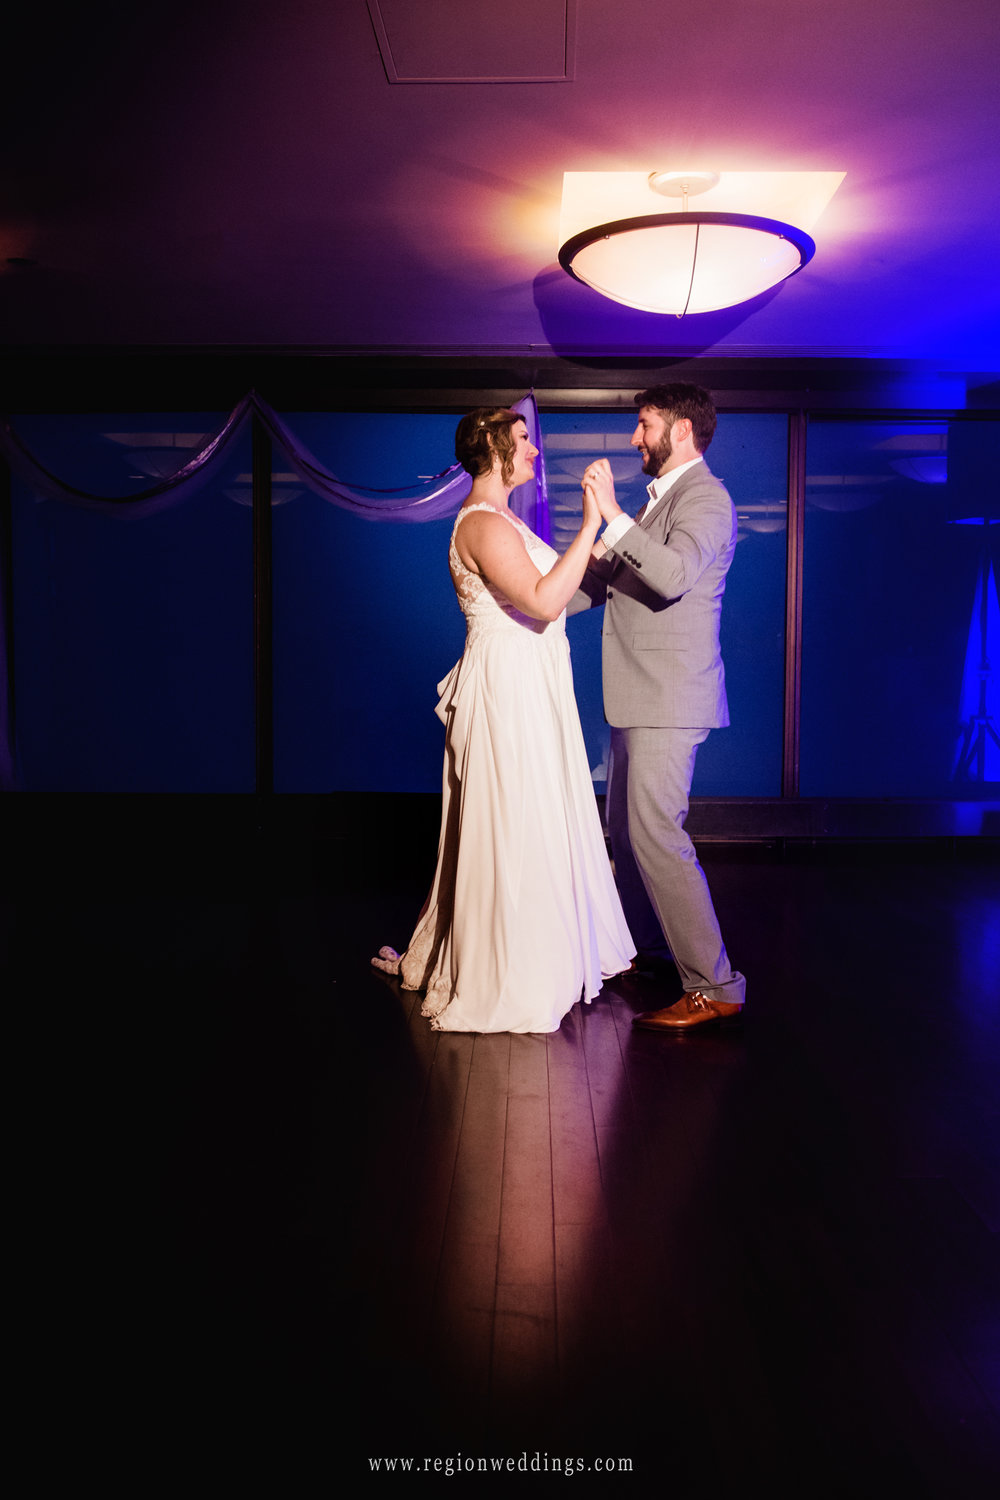 First dance for the bride and groom at The Signature Room.